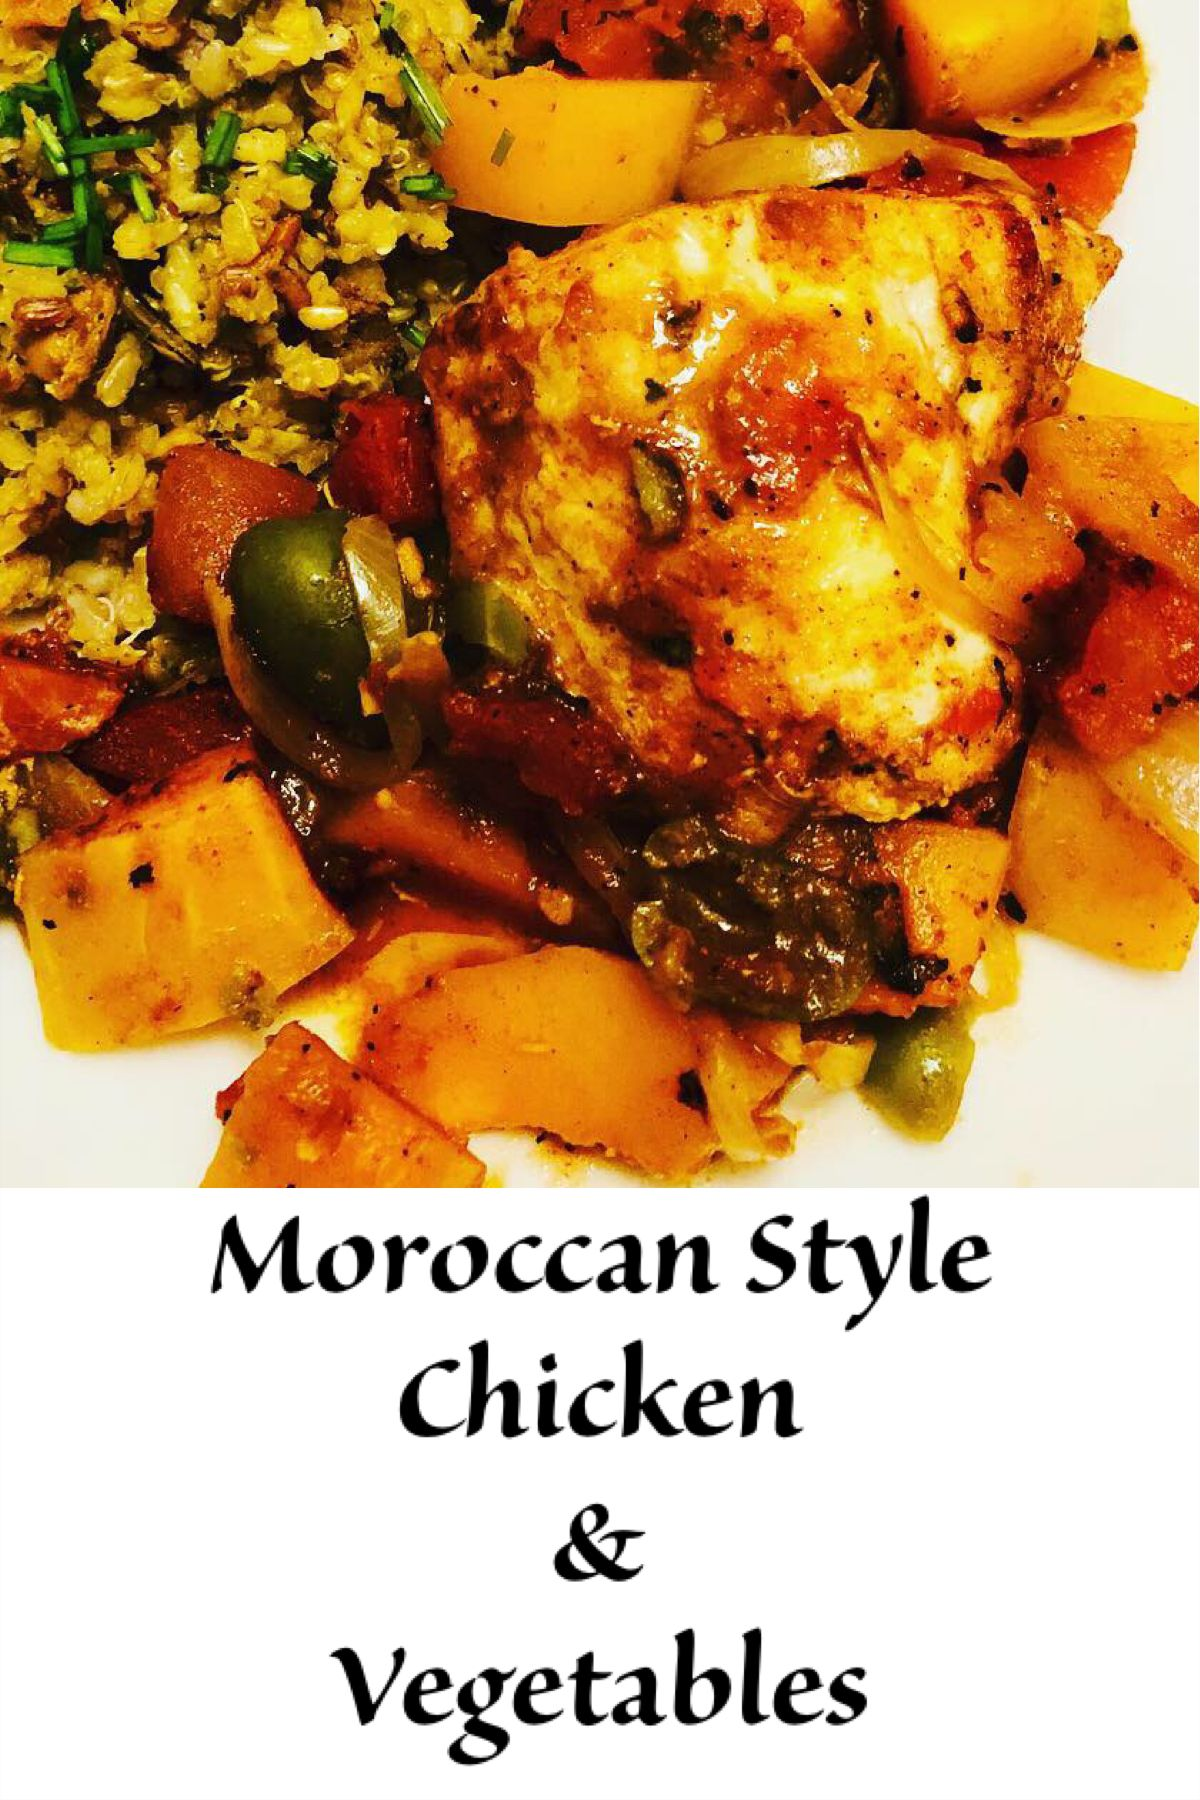 Moroccan Style Chicken And Vegetables Recipe Chicken Vegetables Cooking Chinese Food Food